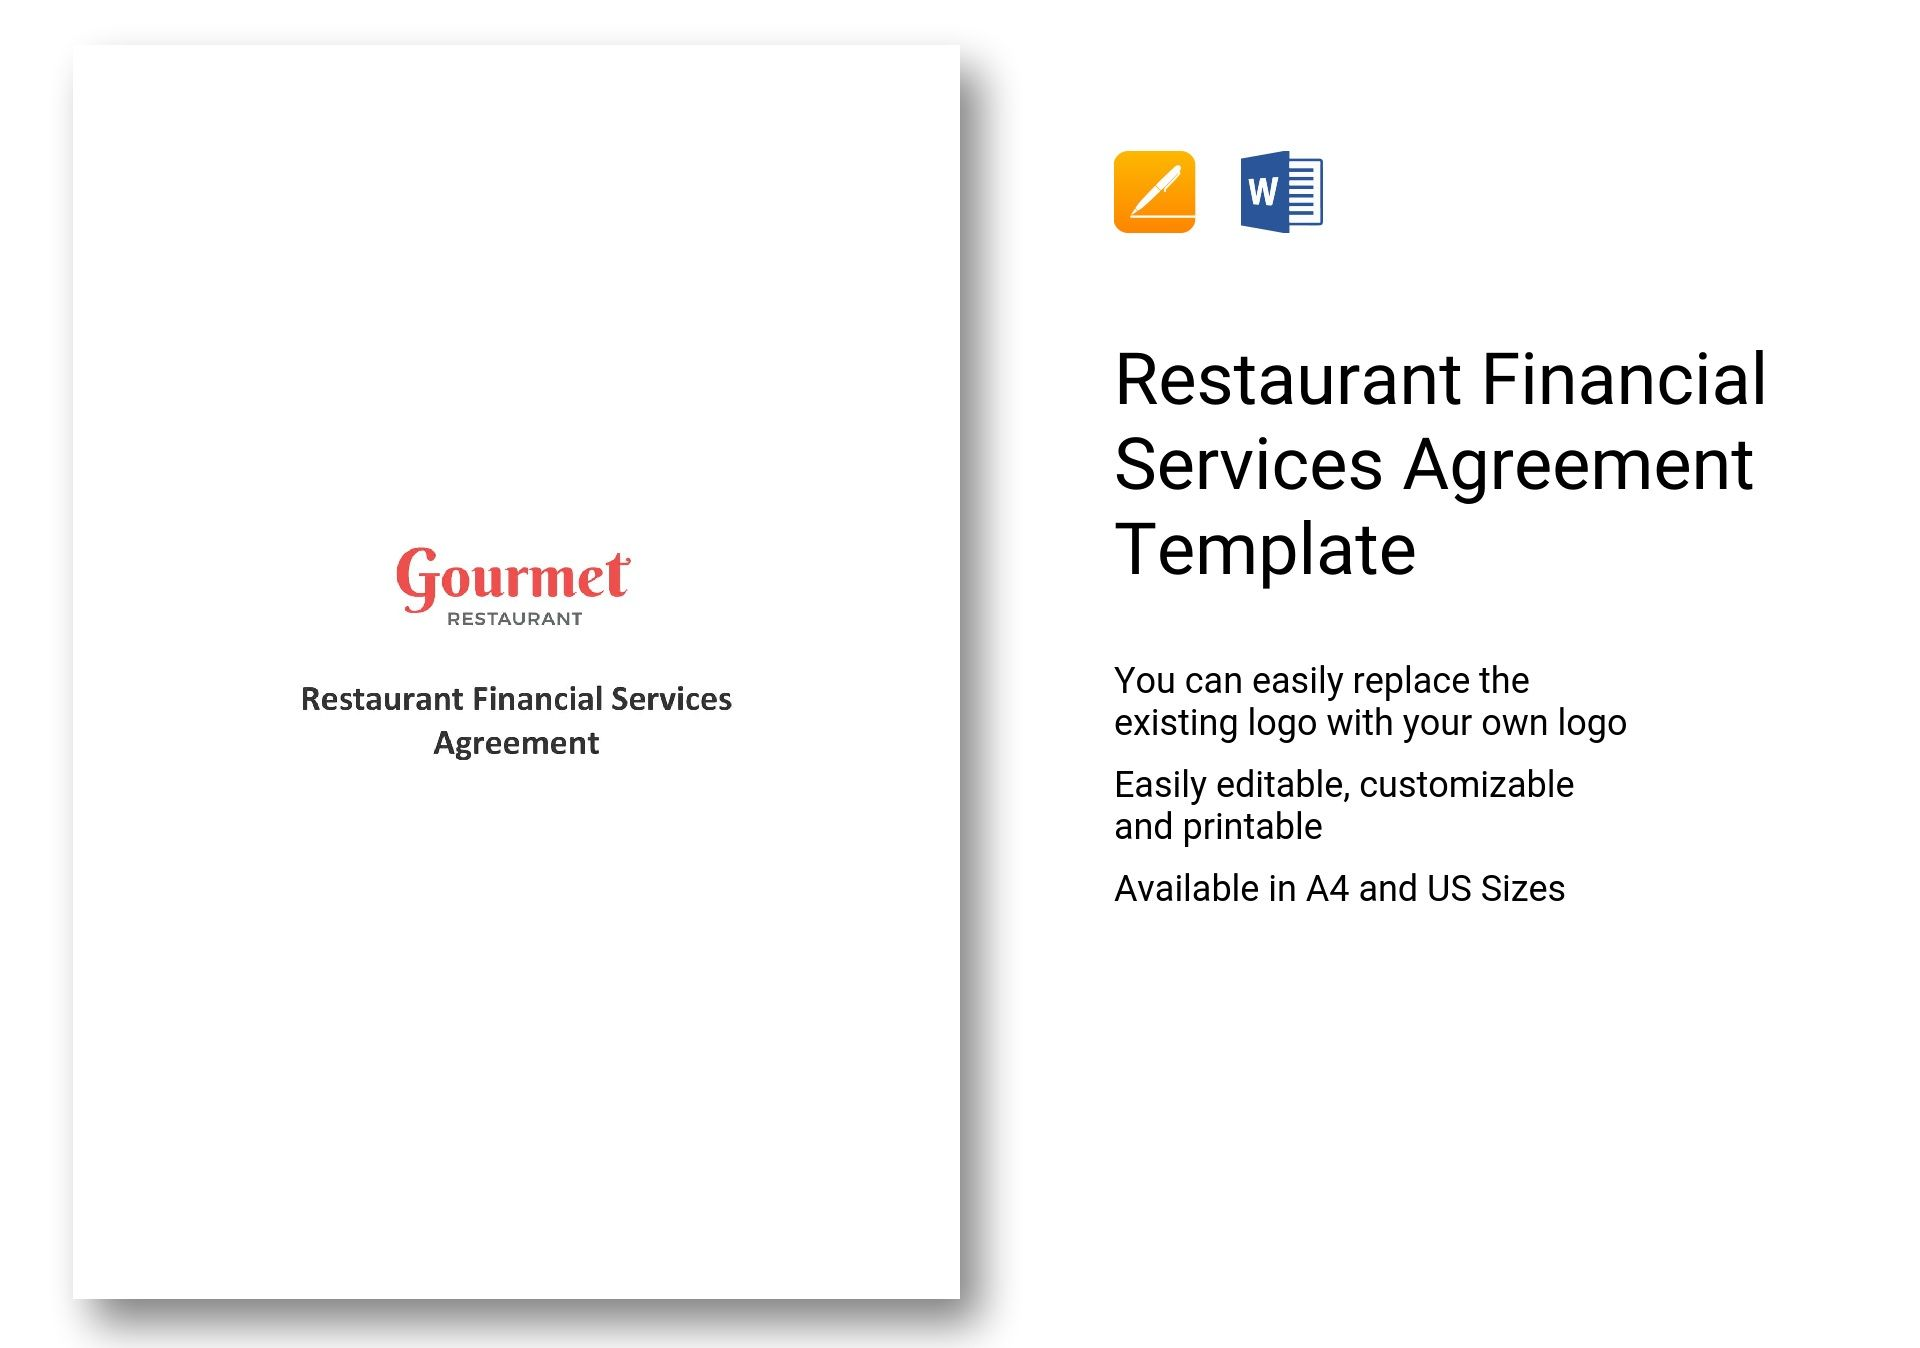 Restaurant Financial Services Agreement Template In Ms Word